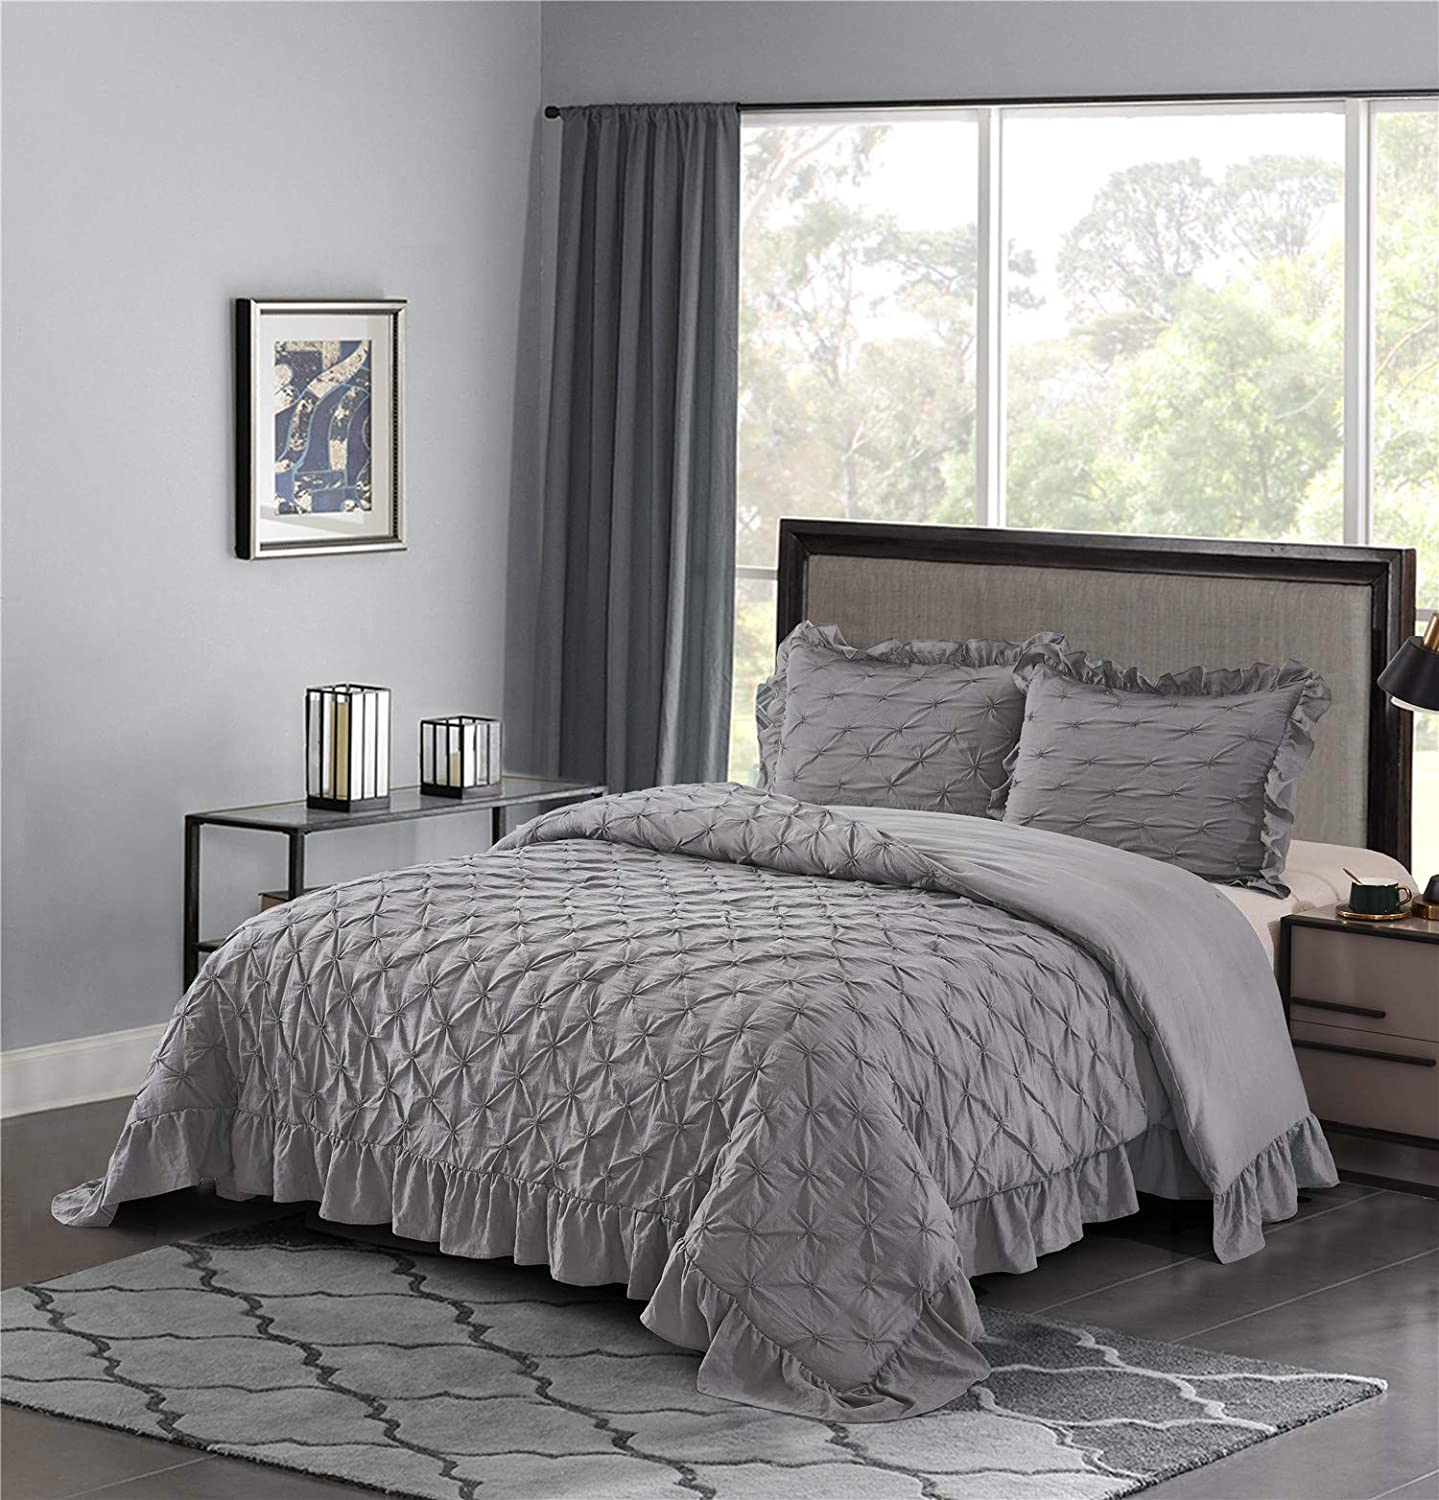 HIG Shabby Chic Comforter Set Queen Gray Lace Ruffled - Pintuck Pinch Pleat Design - Super Soft Hypoallergenic Prewashed Microfiber Lightweight - 3 Piece Bedding Set with Two Shams(BRIANNA-Queen,Gray)